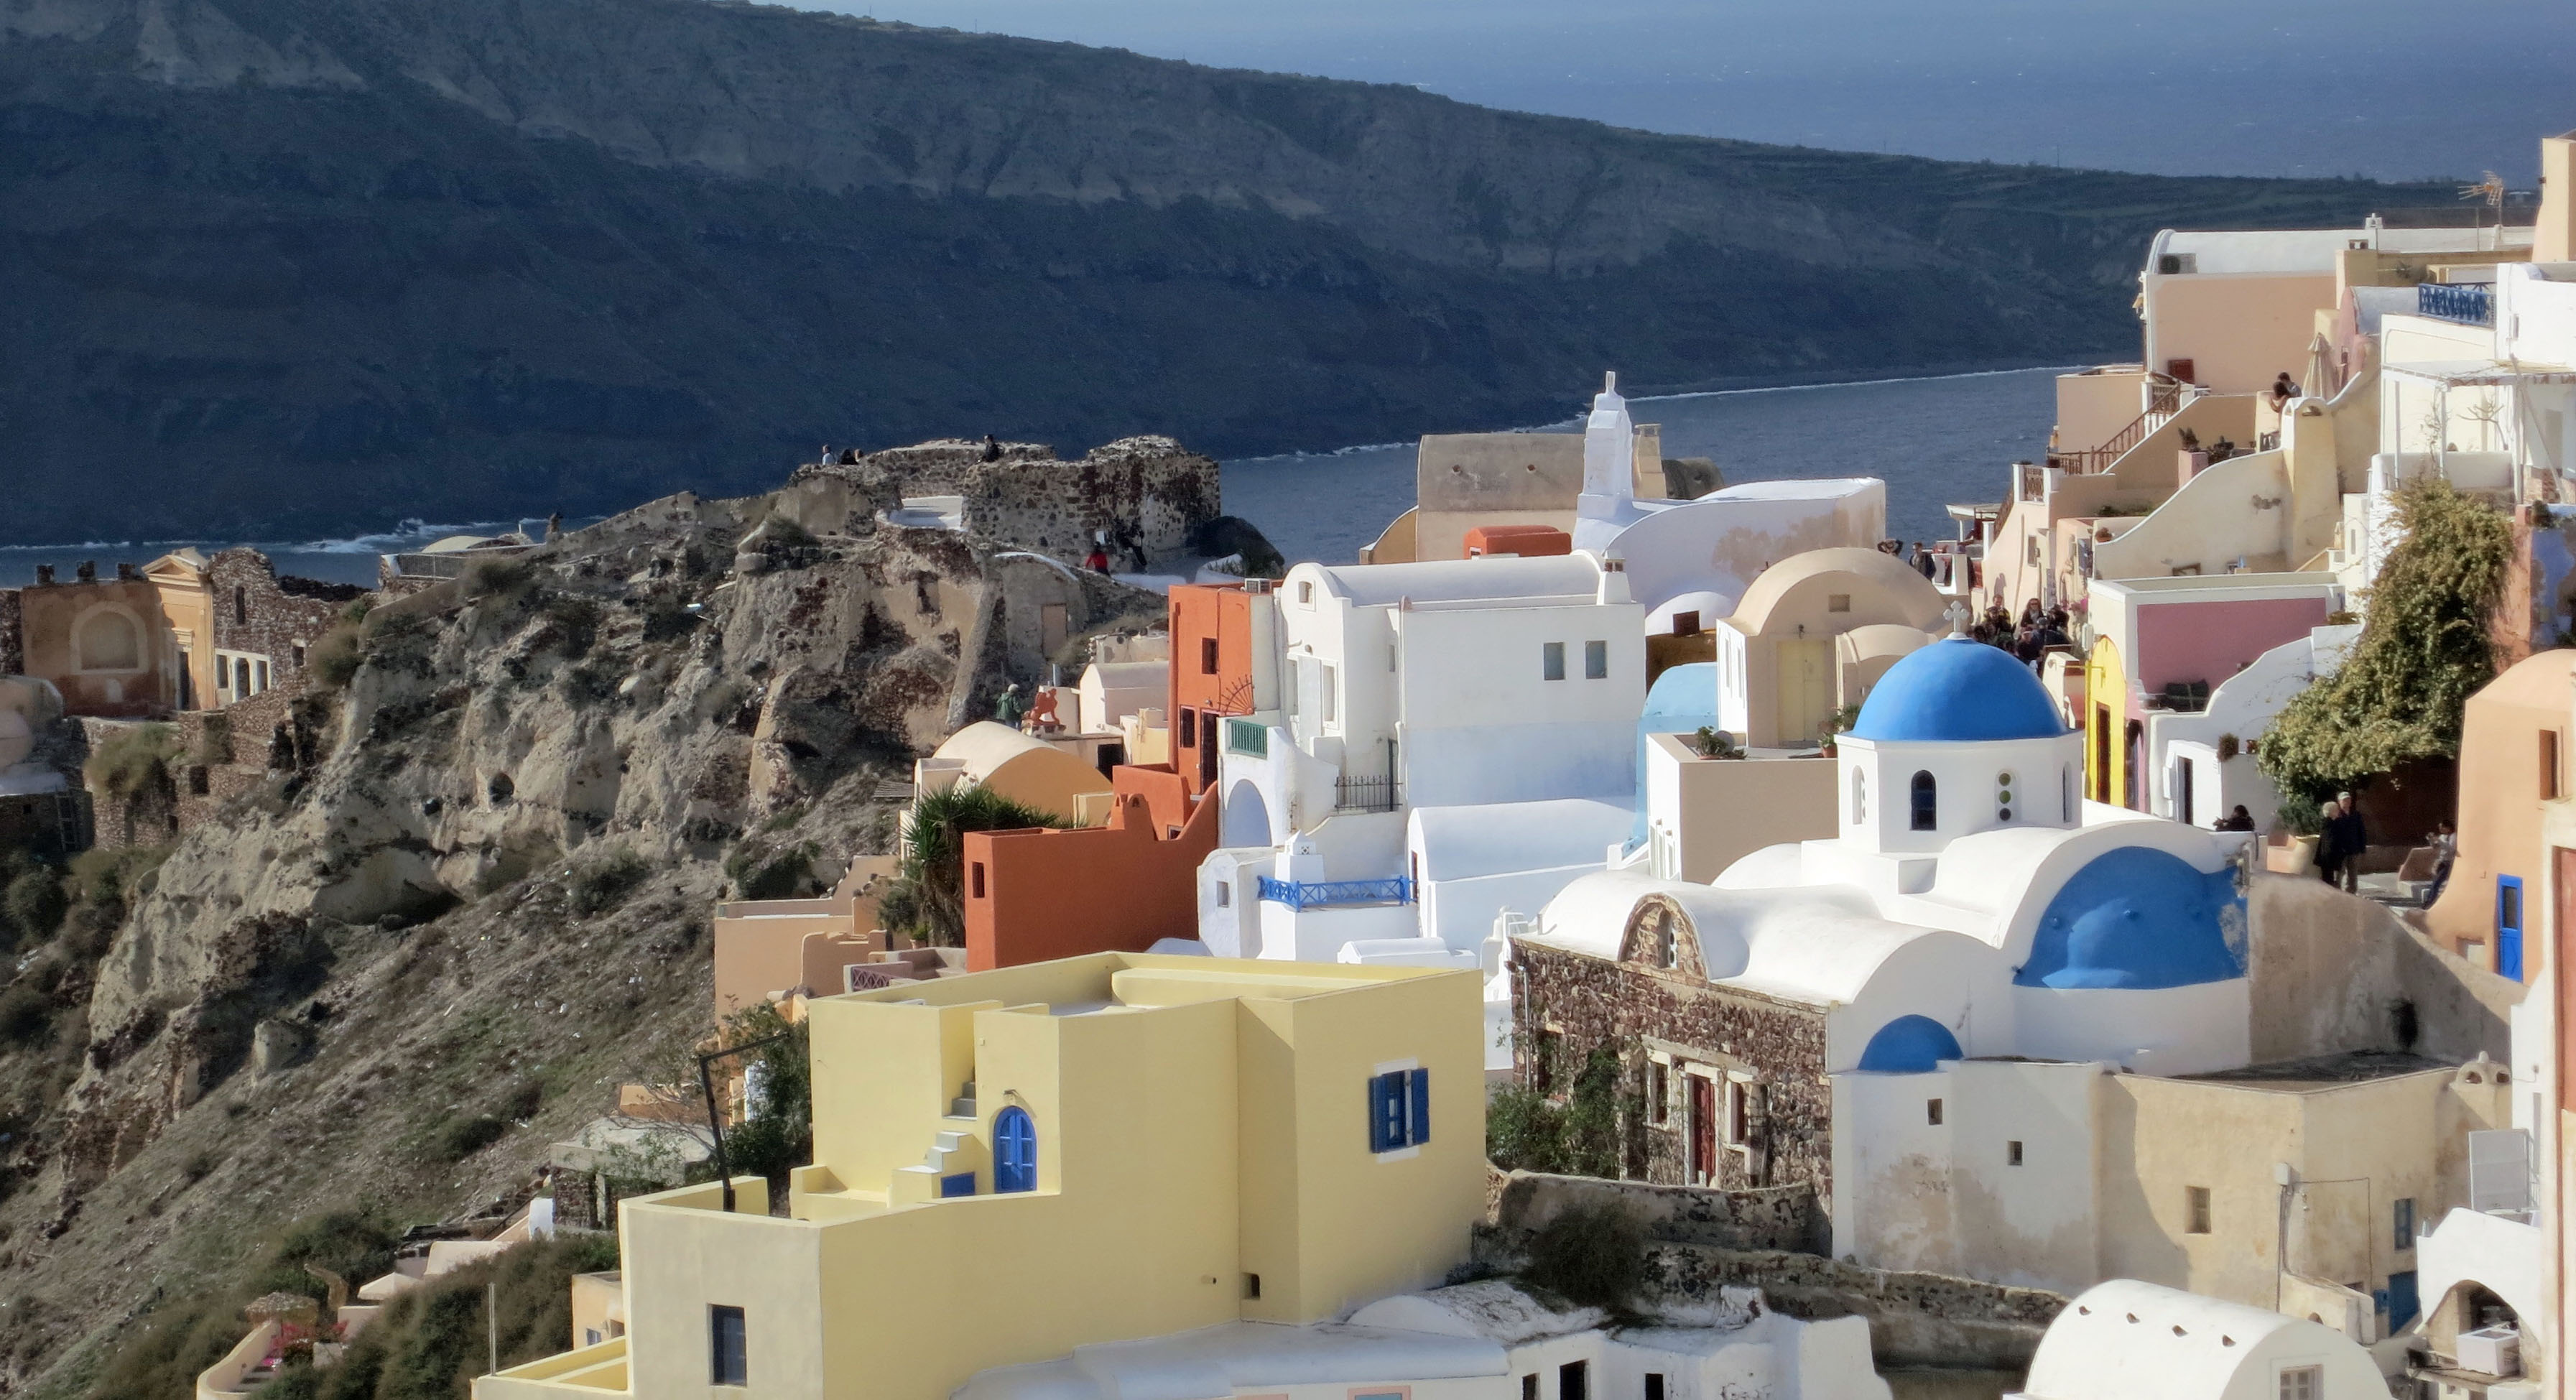 I'll close this blog with a final shot of Oia. The blue domed building is one of the towns many beautiful churches, which I will feature in my next blog.